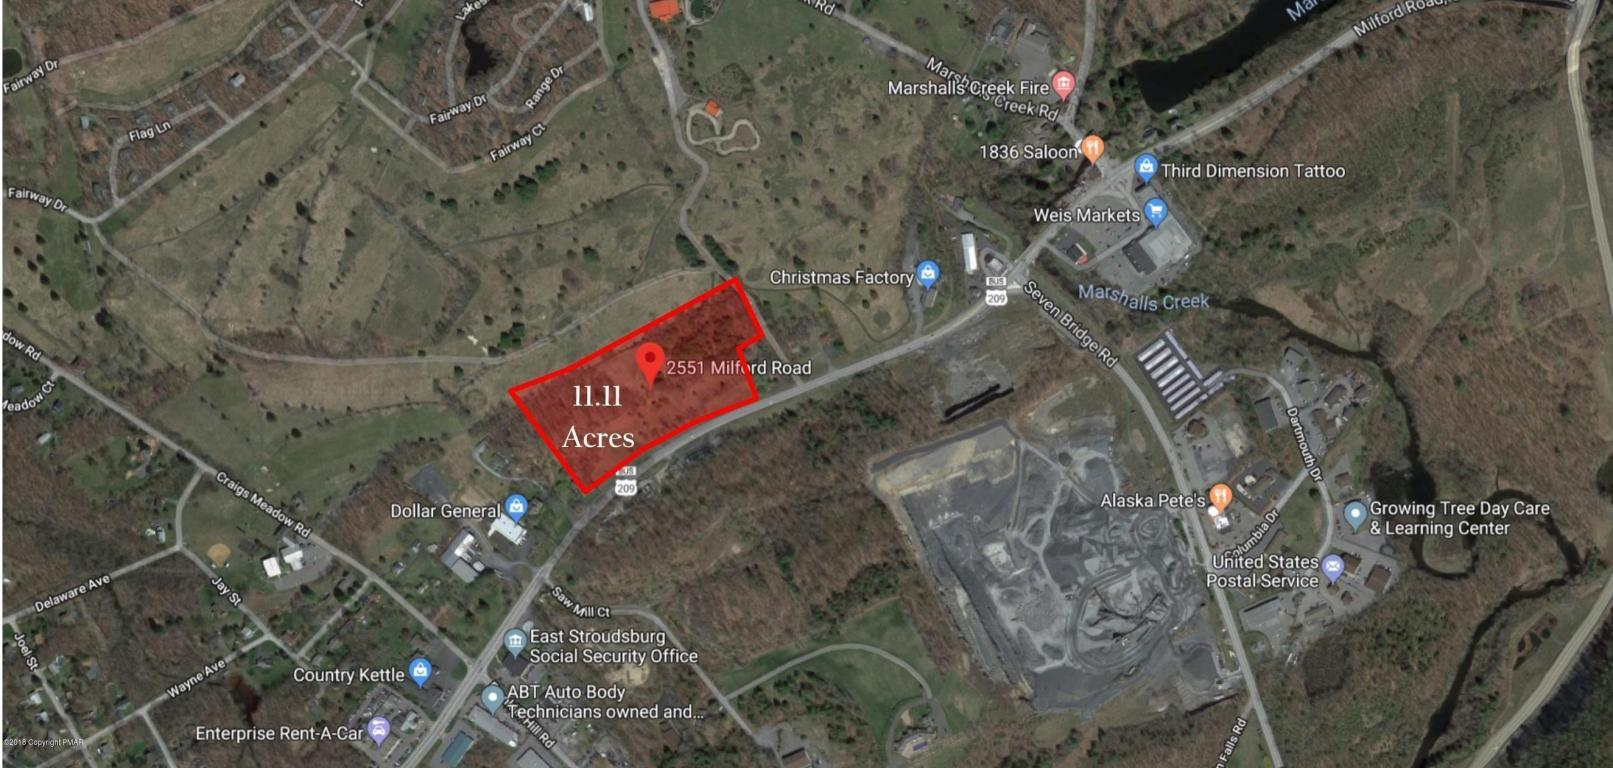 11.11 acres Commercial Property in East Stroudsburg for $1,400,000 on route 11 pa map, route 33 pa map, route 220 pa map, route 611 pa map, route 100 pa map, route 83 pa map, route 309 pa map, route 29 pa map, route 82 pa map, route 51 pa map, route 15 pa map, route 23 pa map,